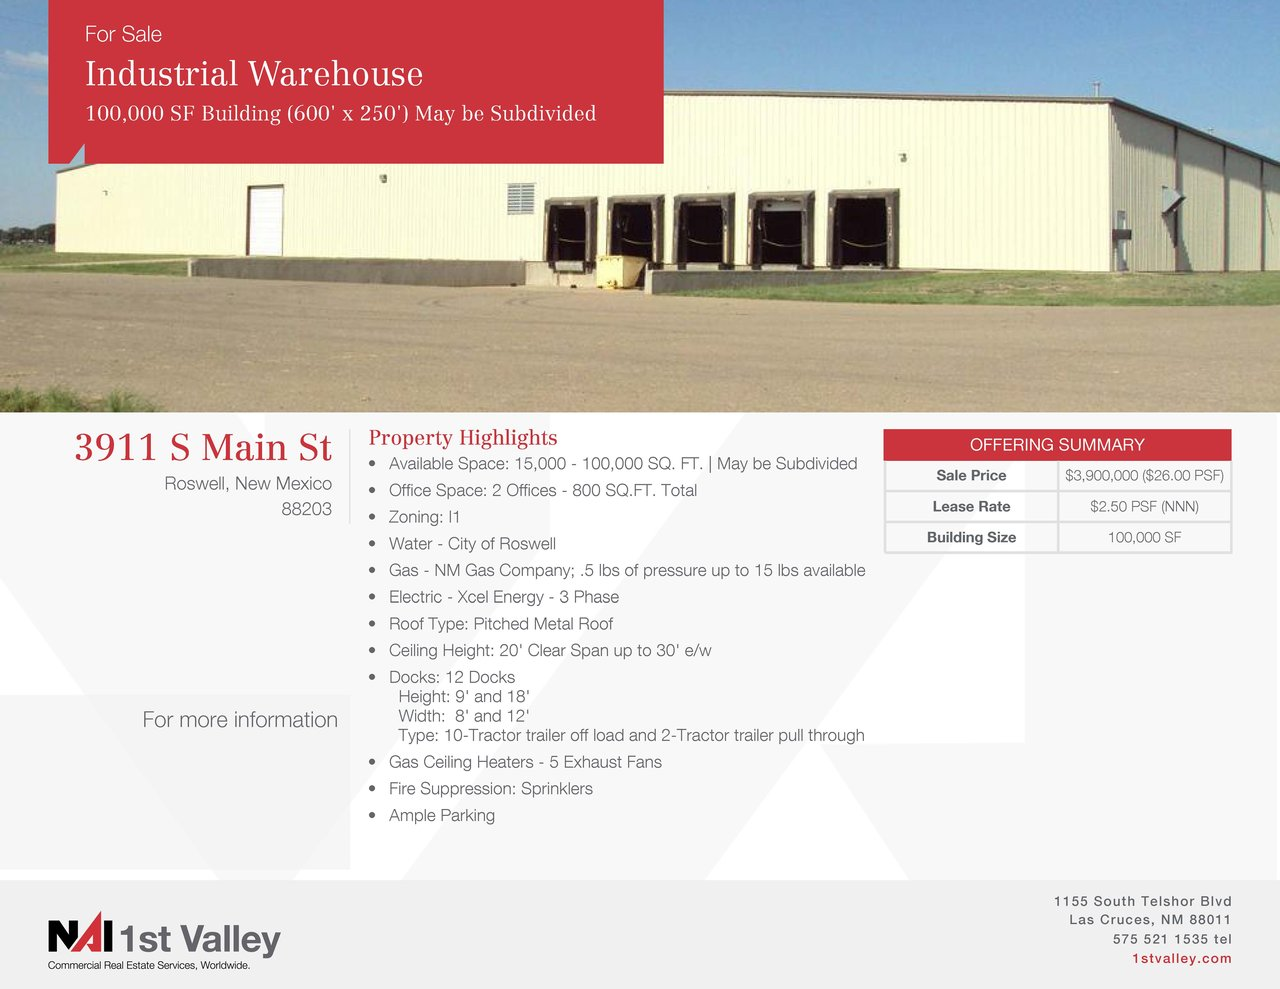 3911 S Main St, Roswell, NM, 88203